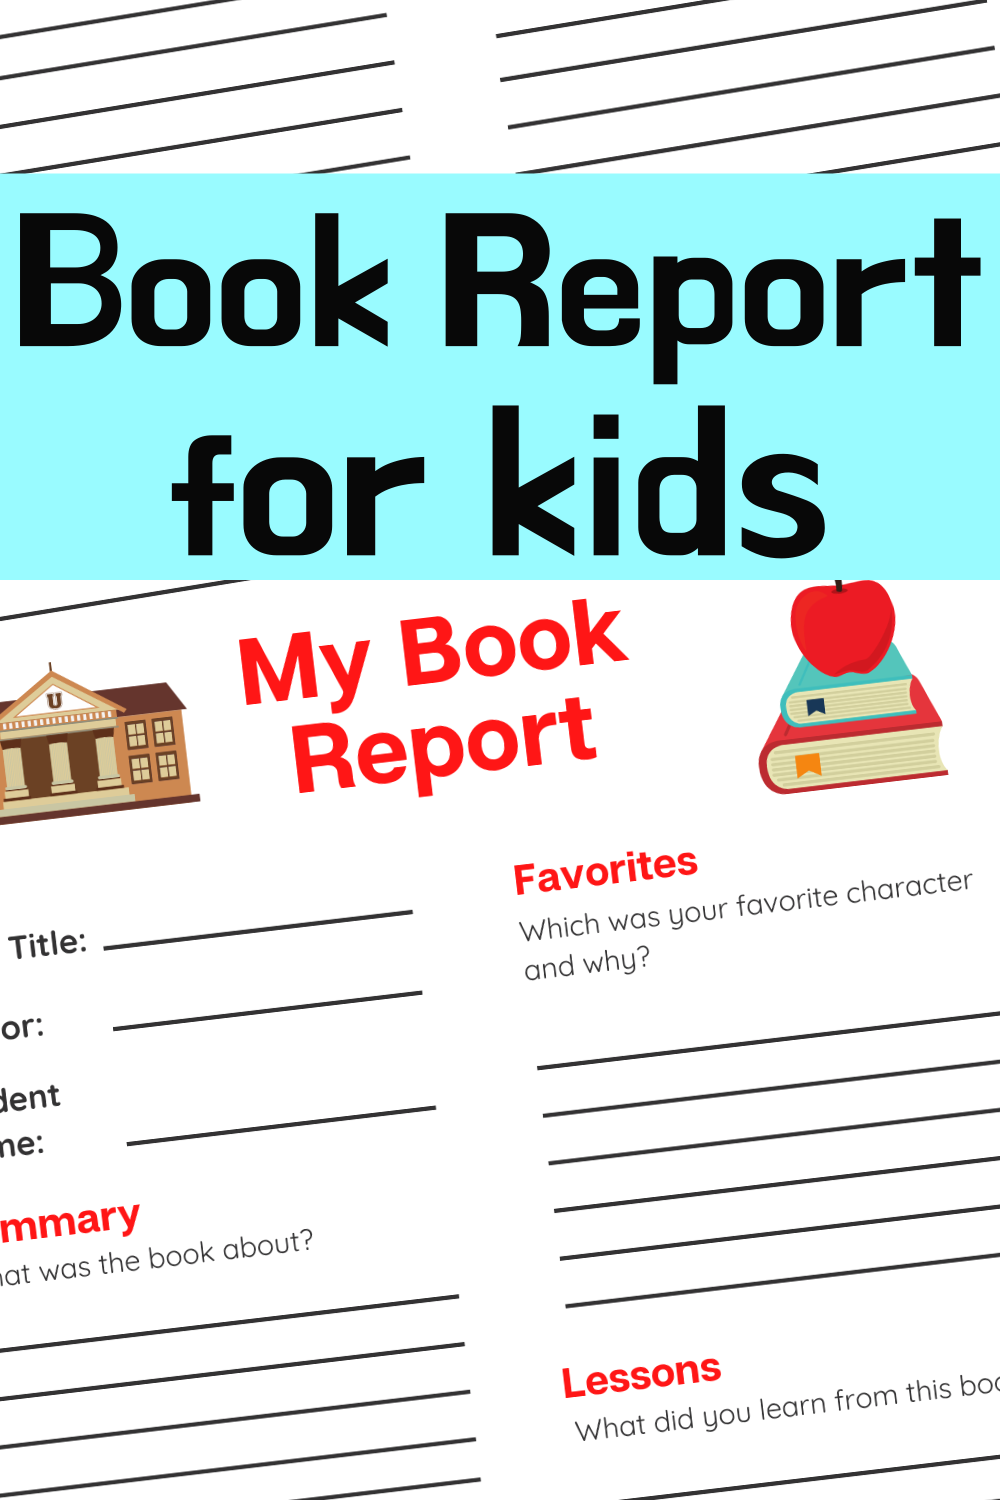 Book Report for Kids